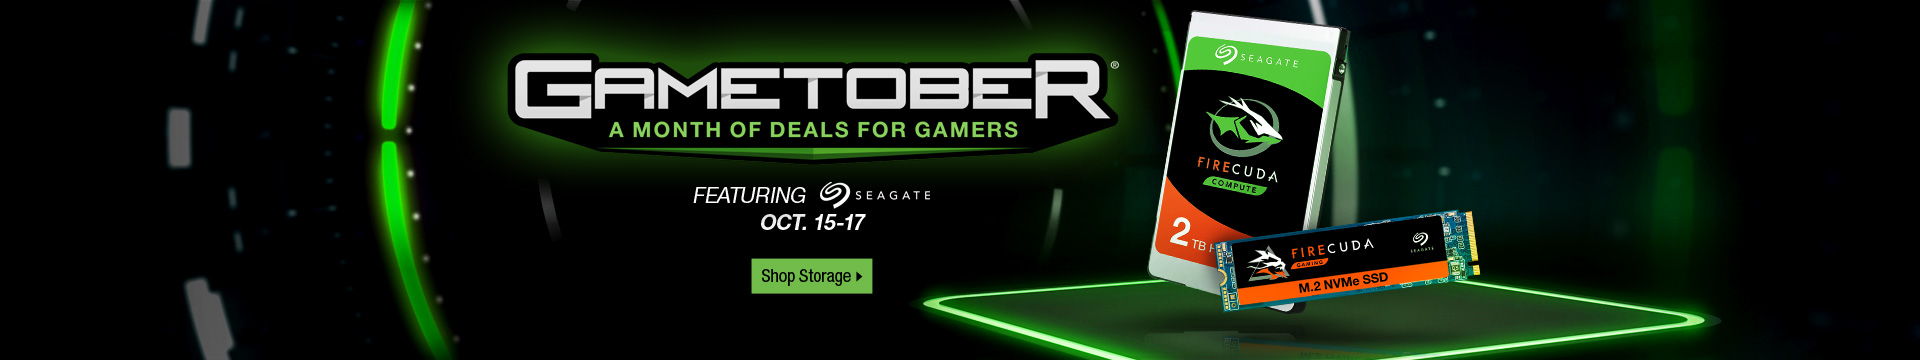 Gametober Featuring Seagate